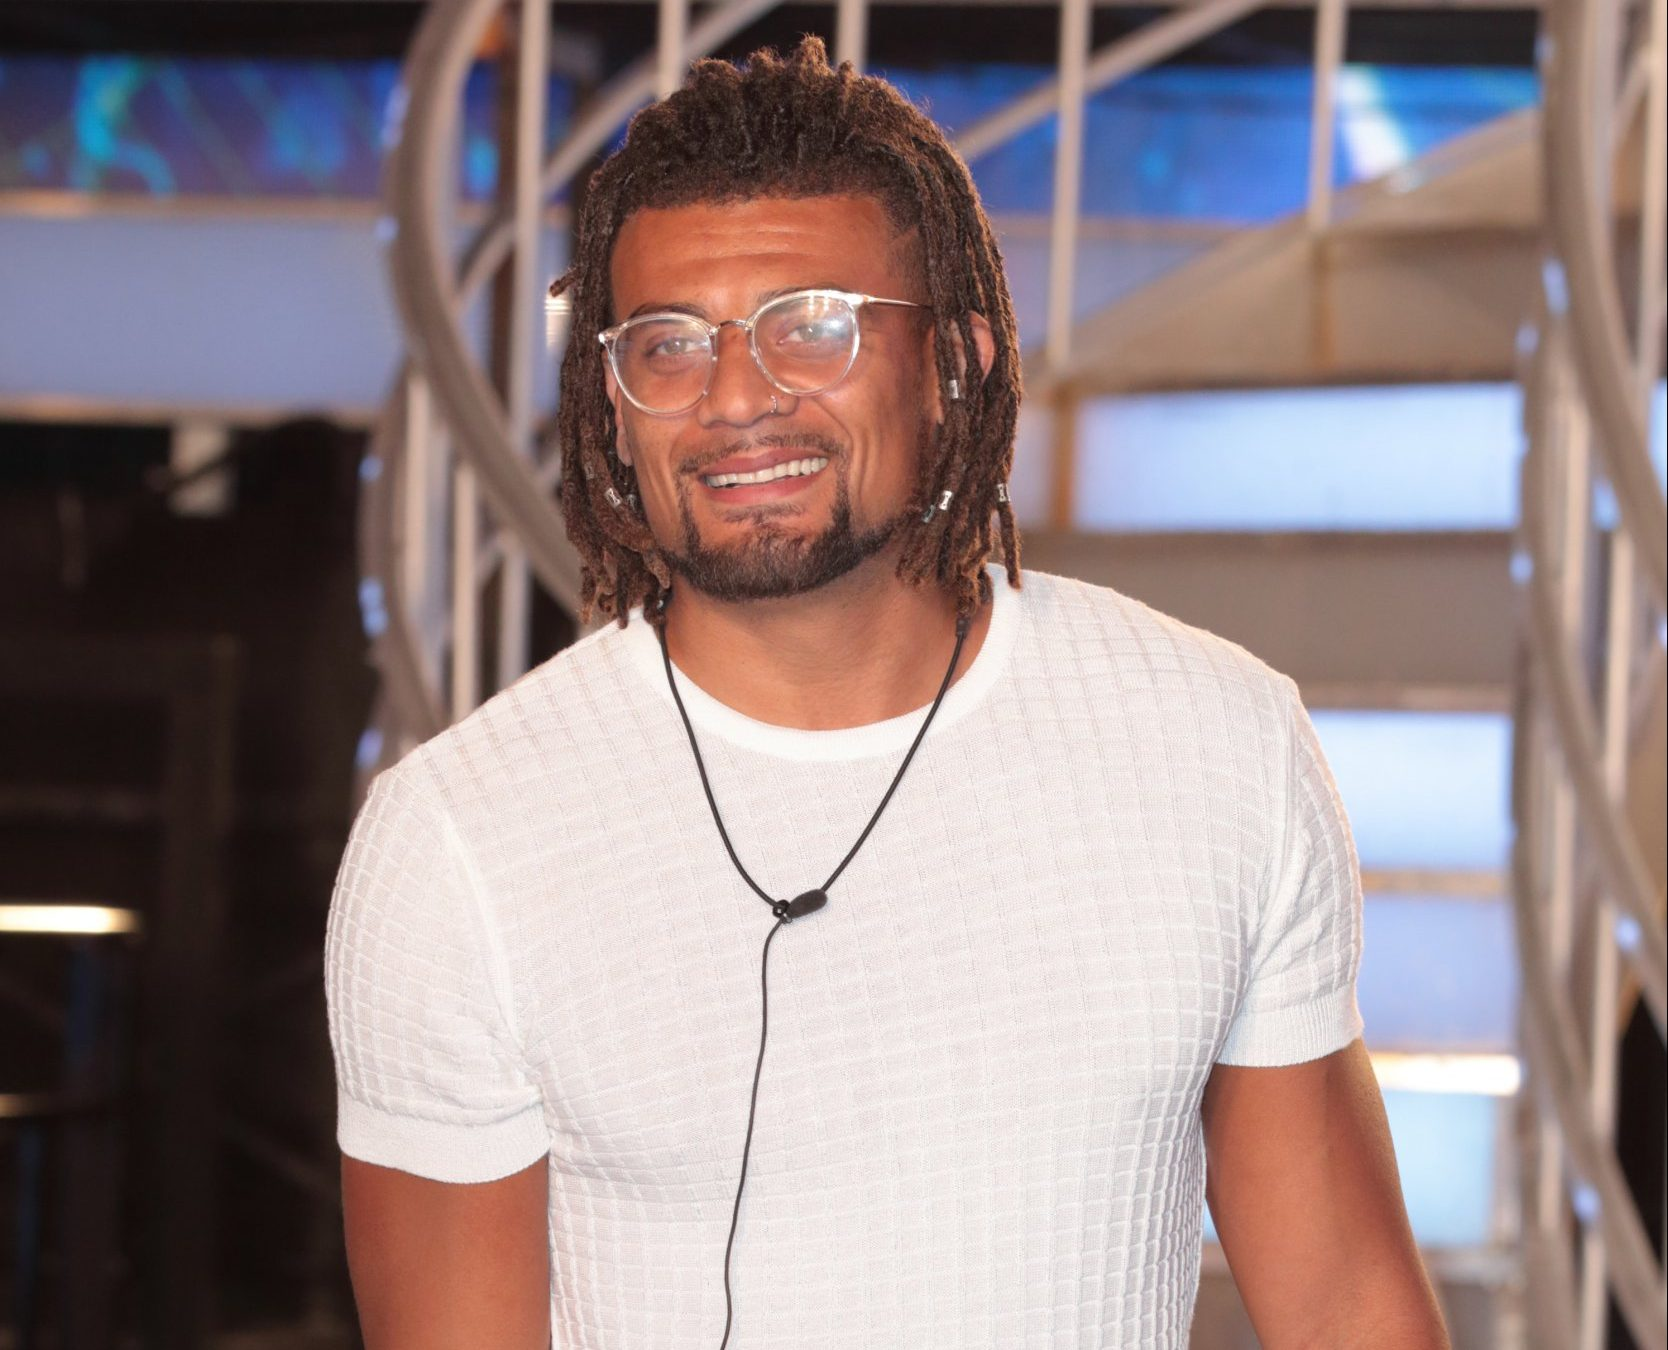 Big Brother's Akeem Griffiths breaks down in tears as Issac Jagroop is evicted